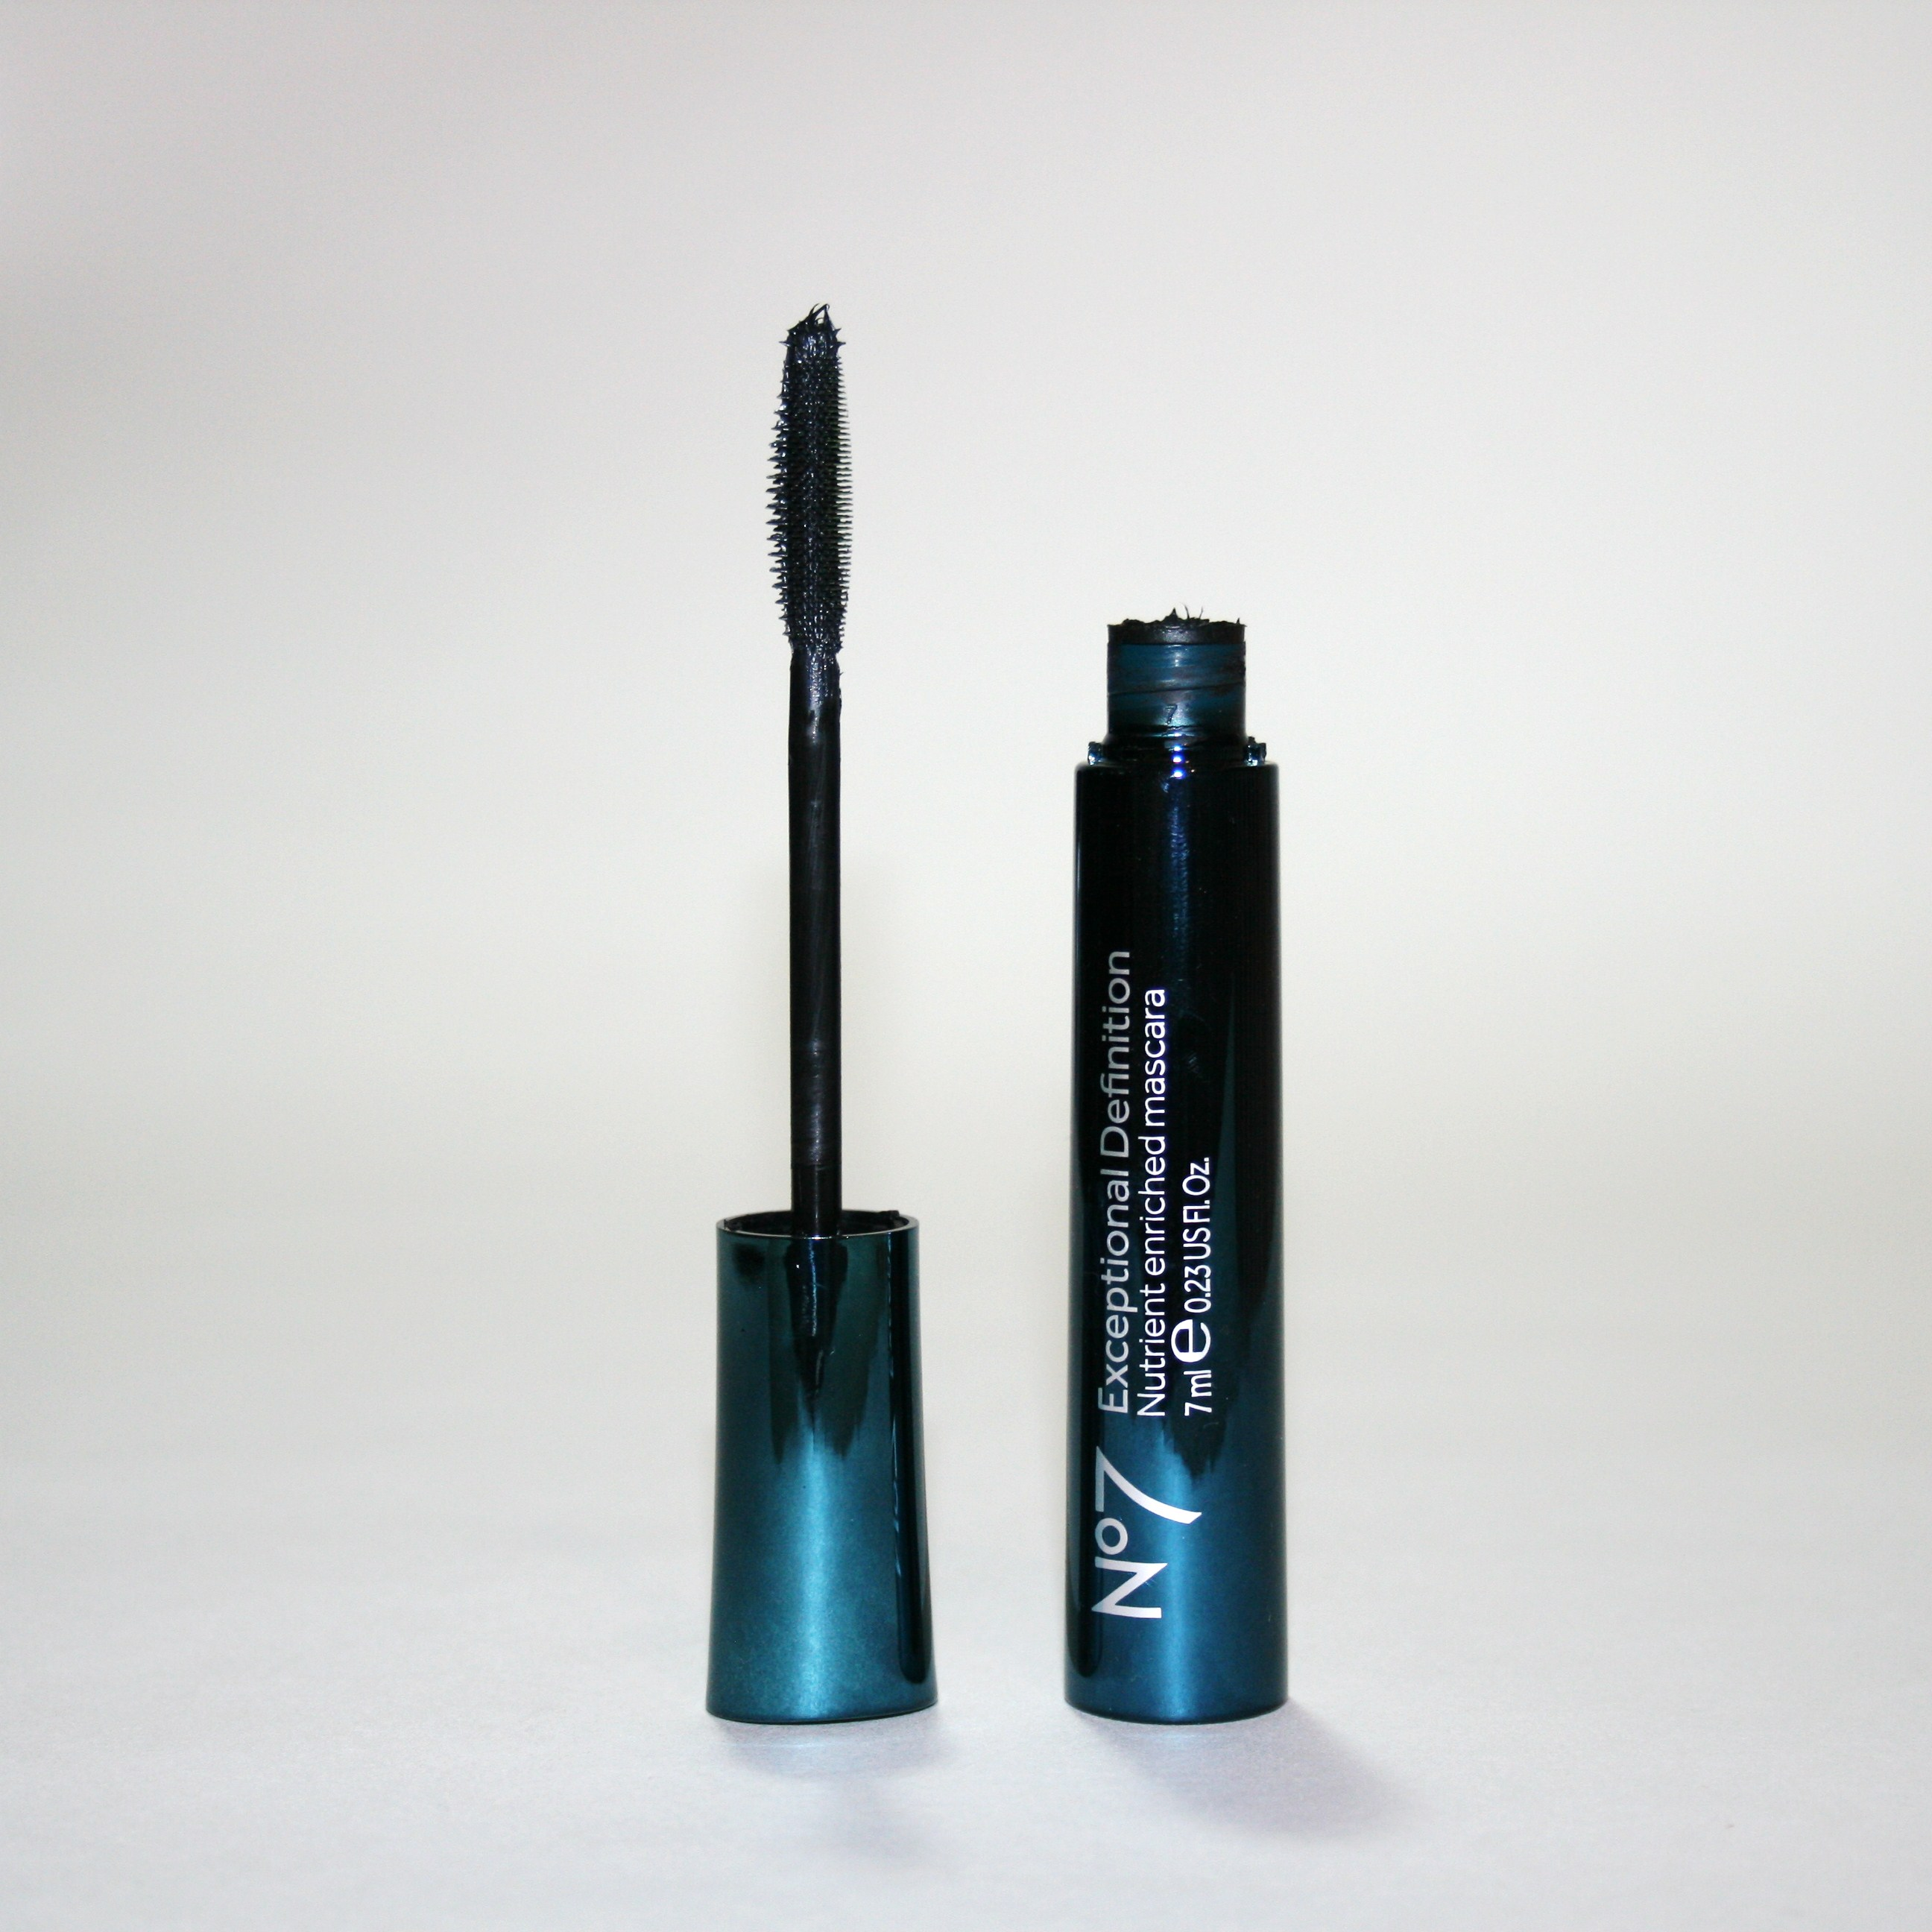 boots no7 exceptional definition mascara - beauty geek uk